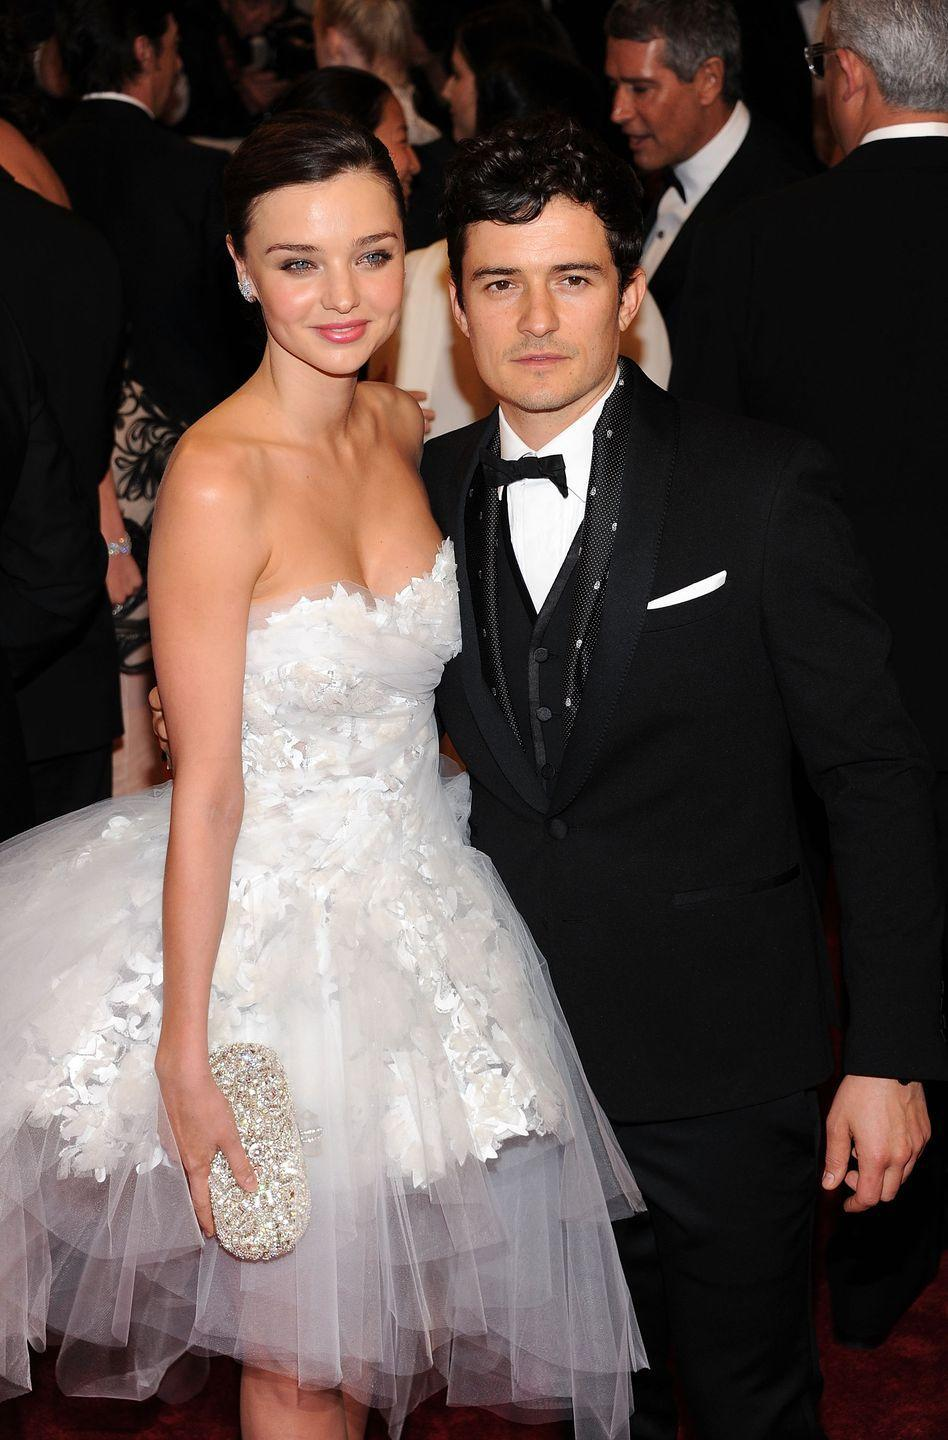 """<p>Fans of the celebrity couple were still celebrating their engagement news when reports of Orlando Bloom and Miranda Kerr's elopement circulated. The model was forced to make a statement in order to explain her last-minute cancellation from a David Jones department store event. """"David Jones very graciously released me during this period so we could celebrate an intimate ceremony and honeymoon together,"""" <a href=""""https://people.com/celebrity/orlando-bloom-and-miranda-kerr-secretly-marry/"""" rel=""""nofollow noopener"""" target=""""_blank"""" data-ylk=""""slk:Miranda said in a statement"""" class=""""link rapid-noclick-resp"""">Miranda said in a statement</a>.</p>"""